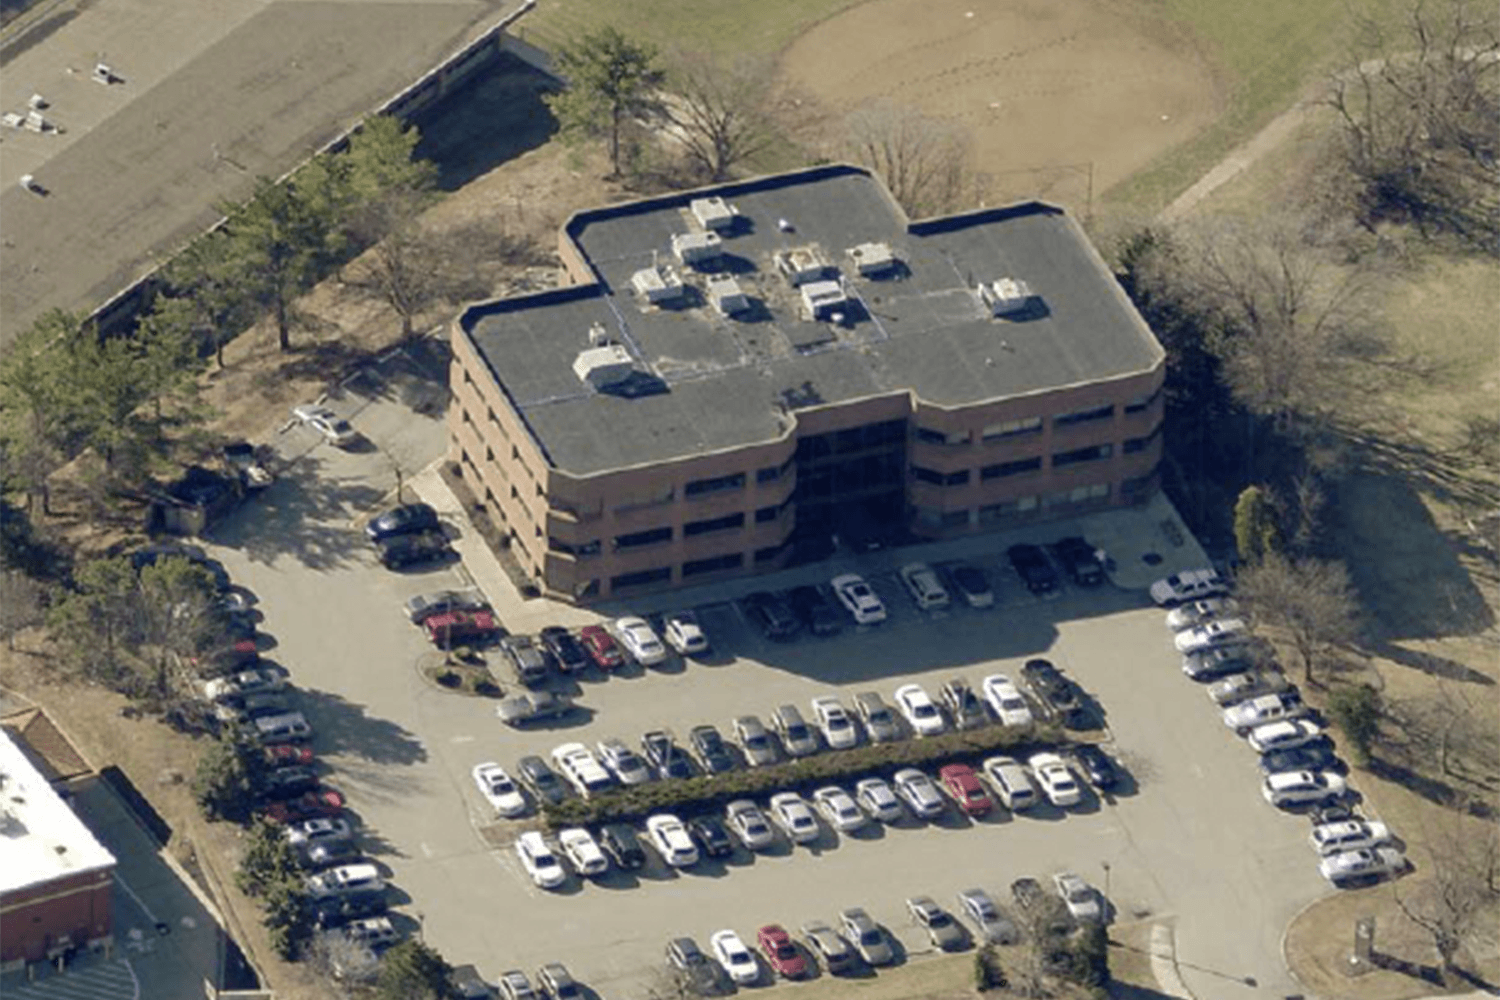 aerial view of 1145 Bower Hill Road, a three-story brick building